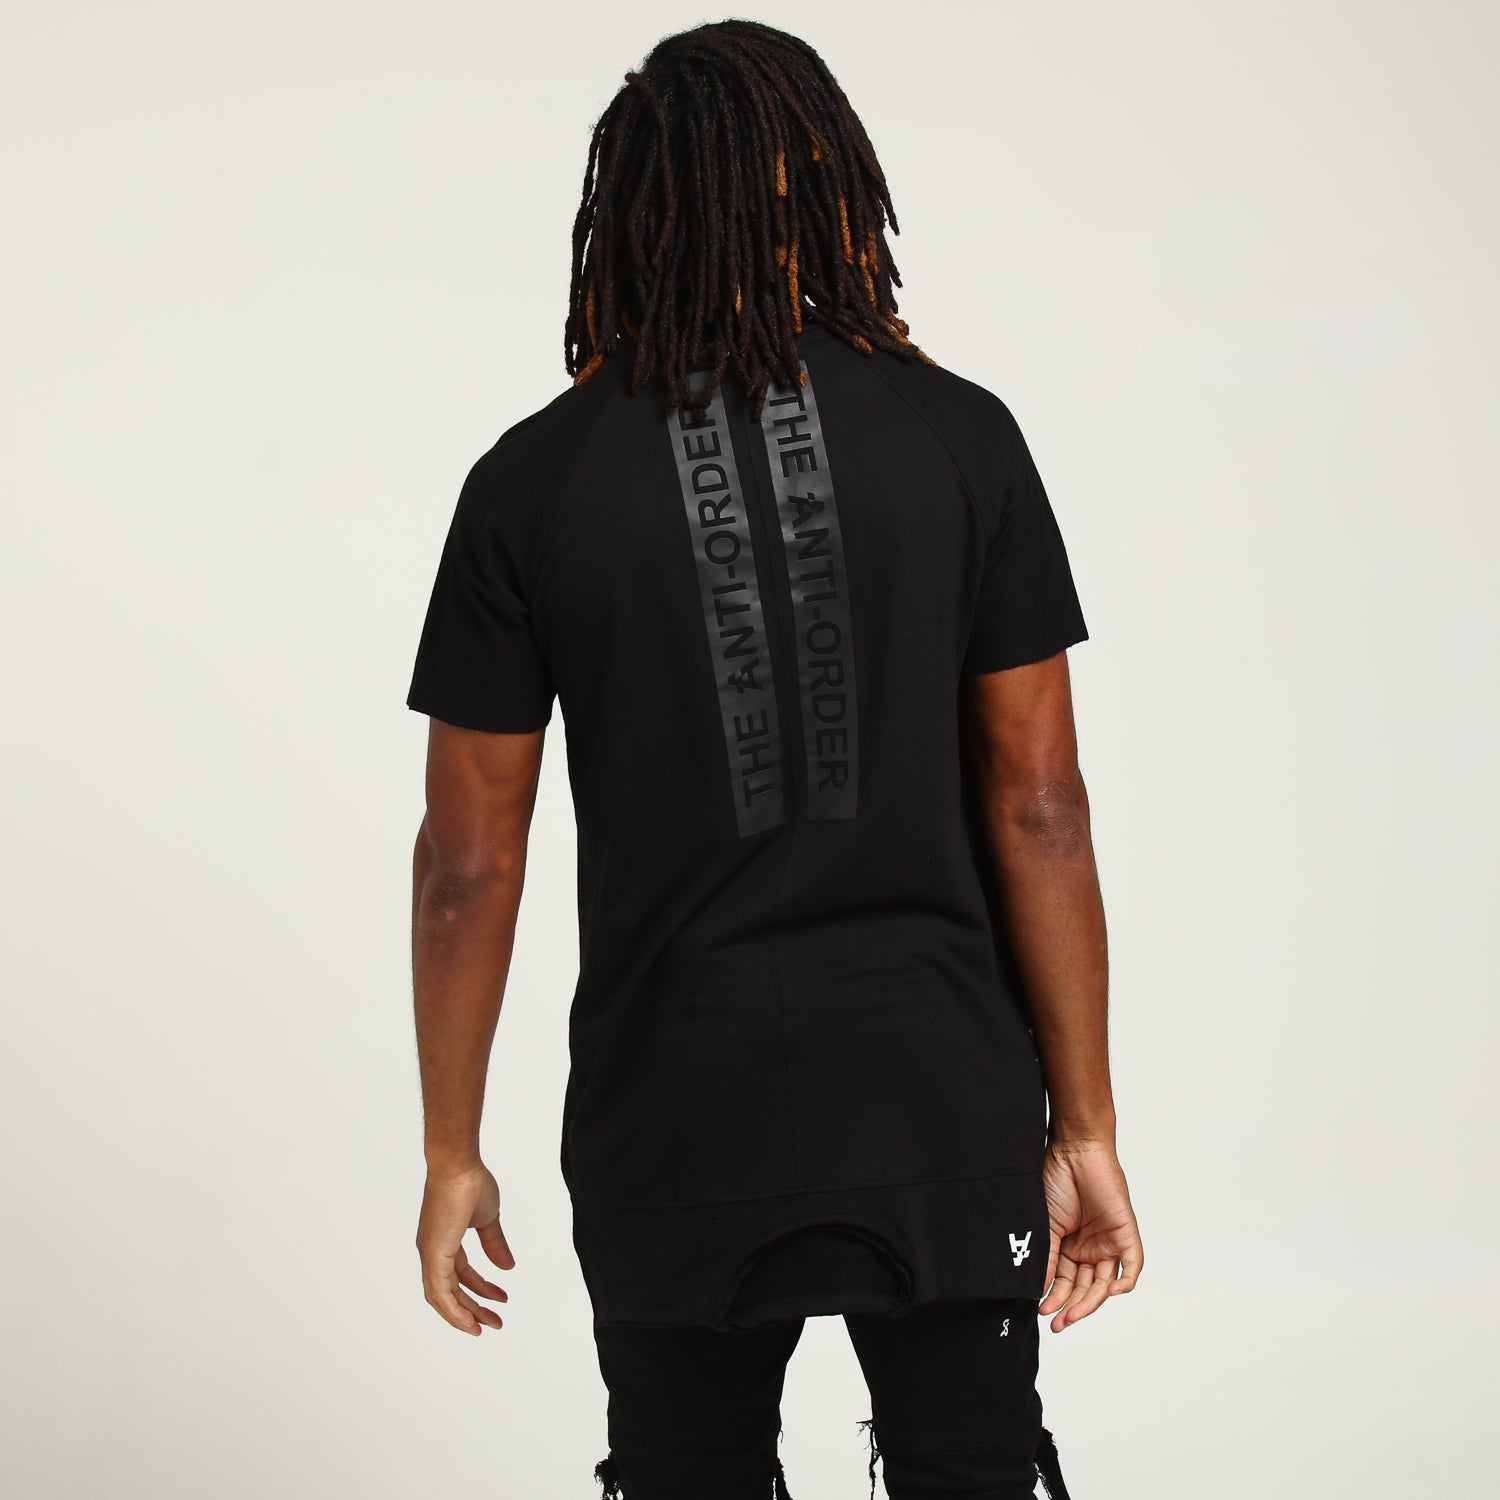 TALES TALL TEE - Black